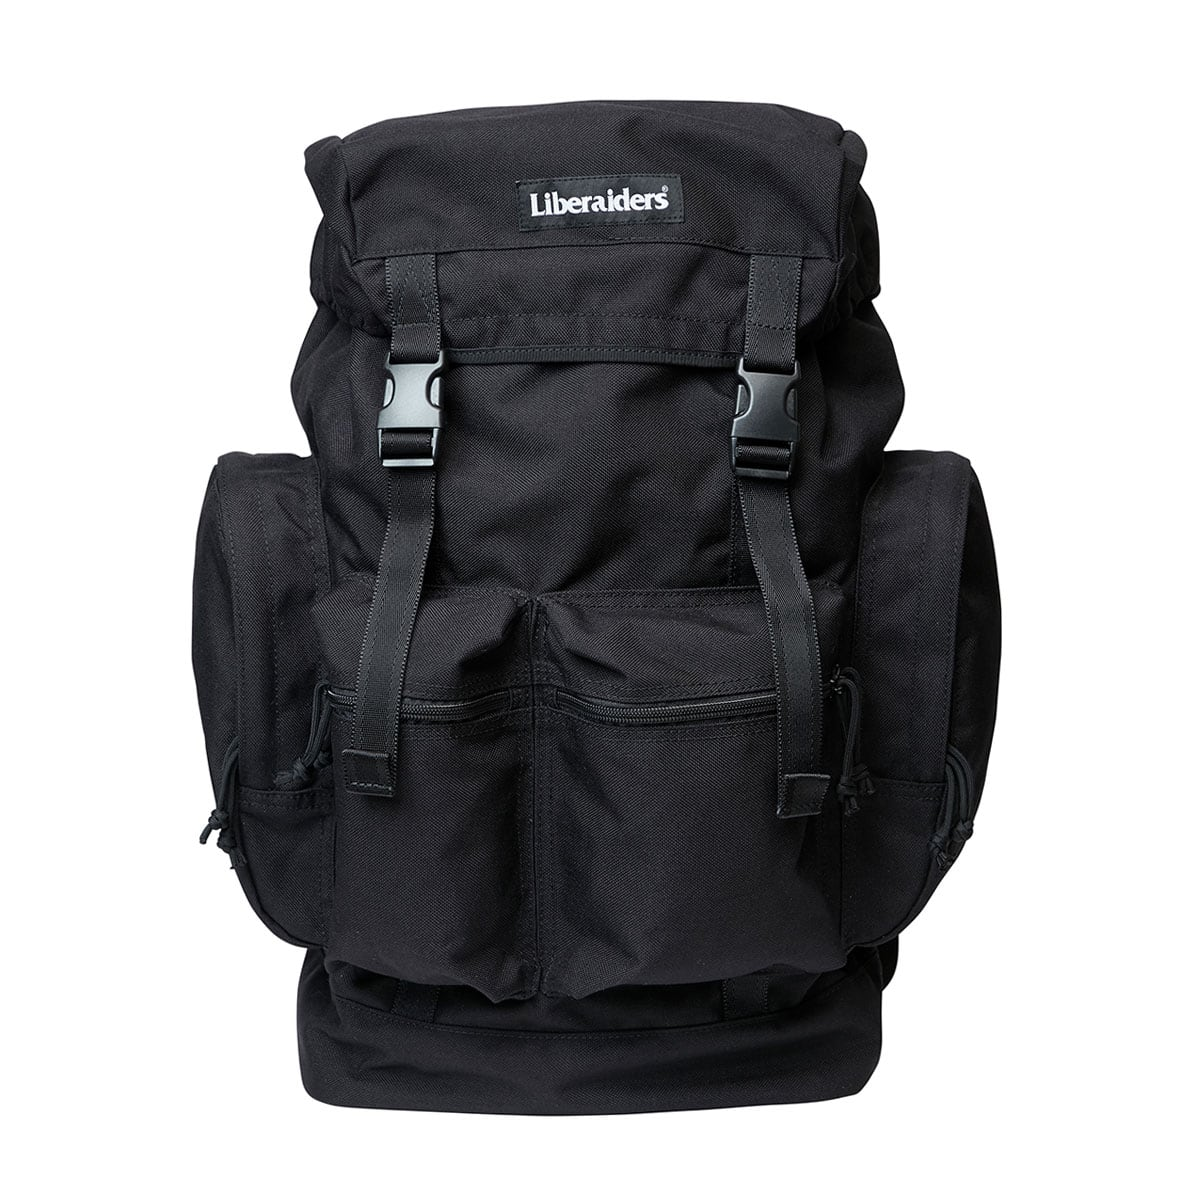 LIBERAIDERS TRAVELIN' SOLDIER BACKPACK BLACK 20SP-I_photo_large